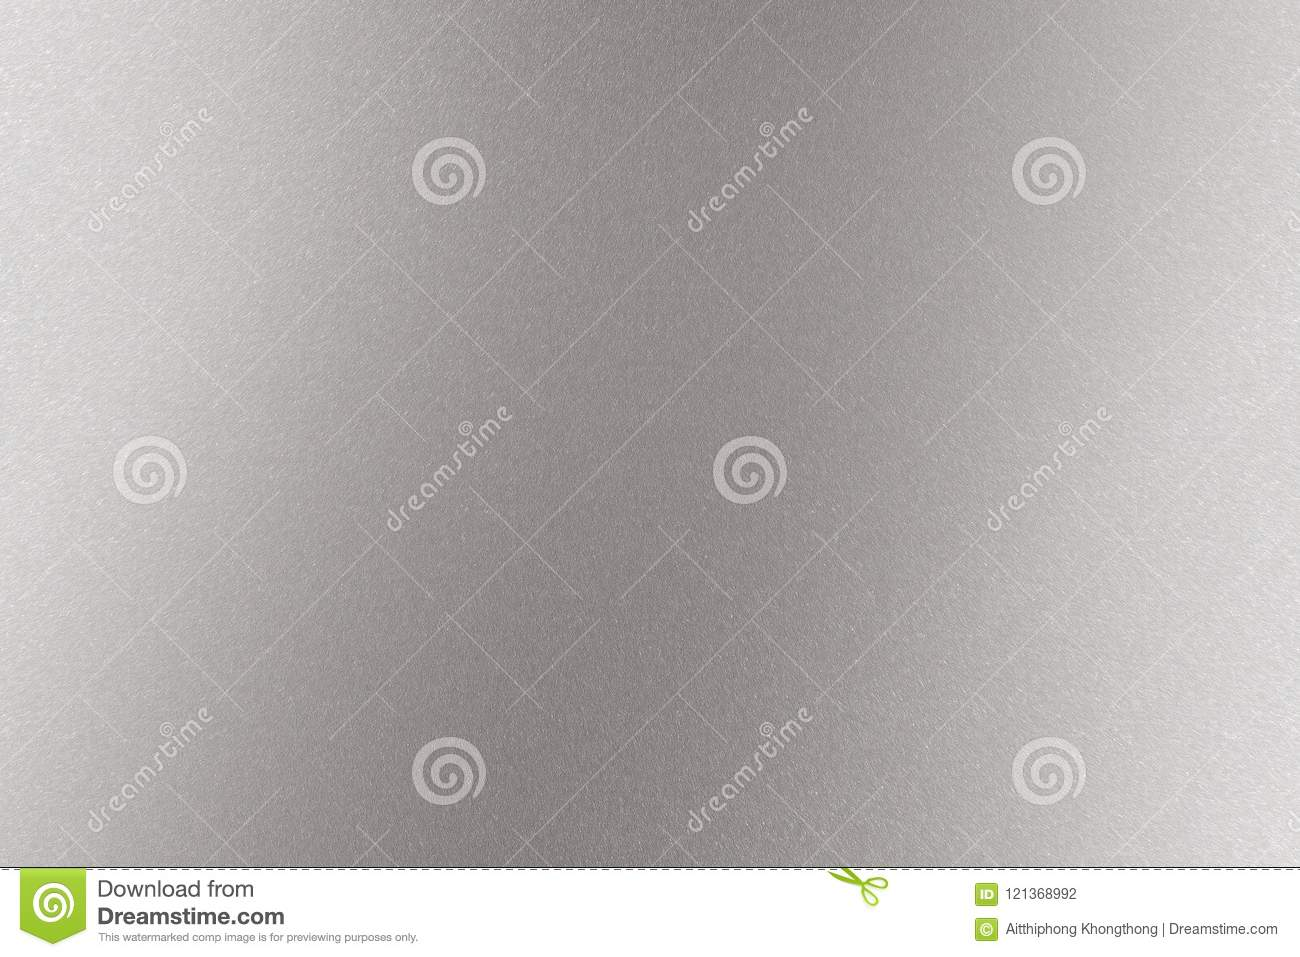 Brushed stainless steel texture, abstract background